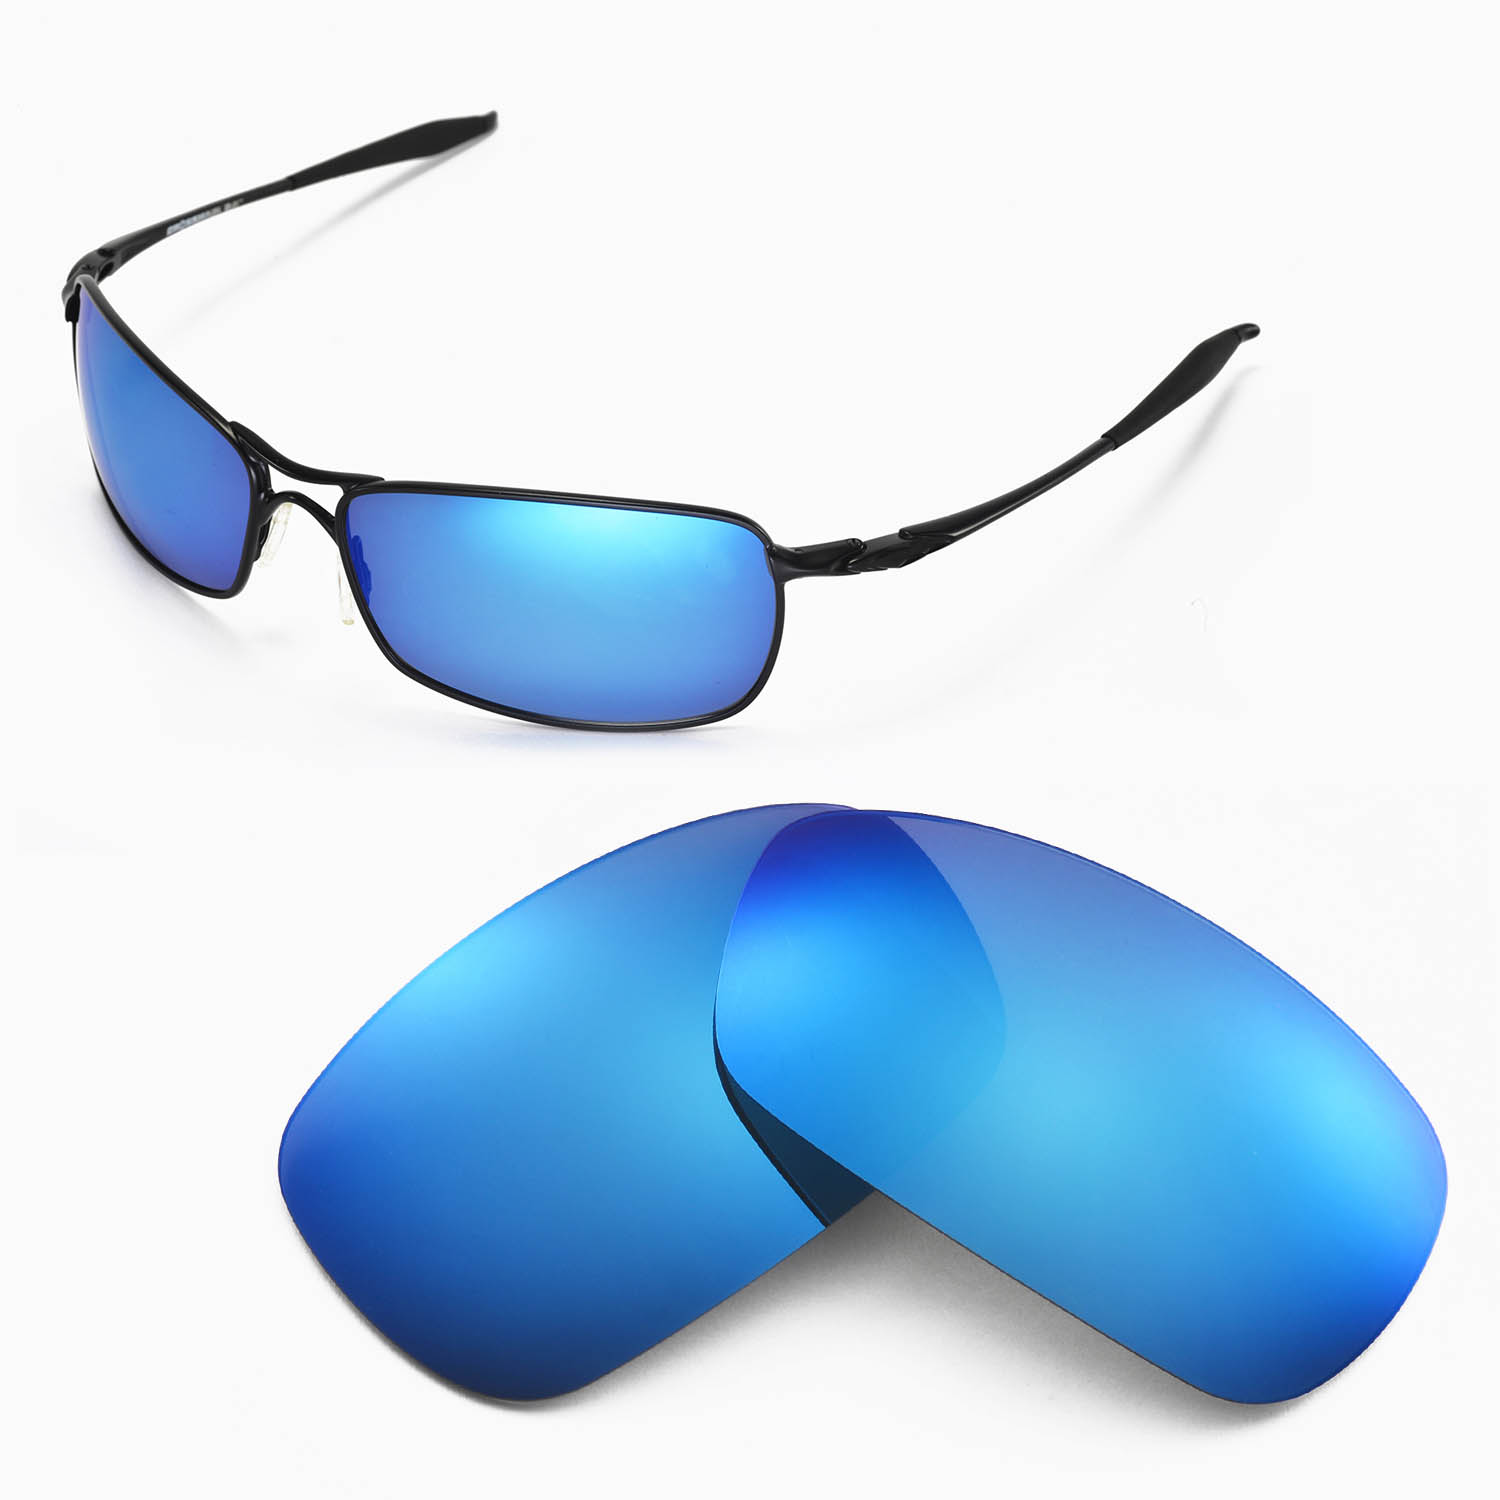 0a8182ec801 Details about New WL Polarized Ice Blue Replacement Lenses For Oakley  Crosshair 2.0 Sunglasses